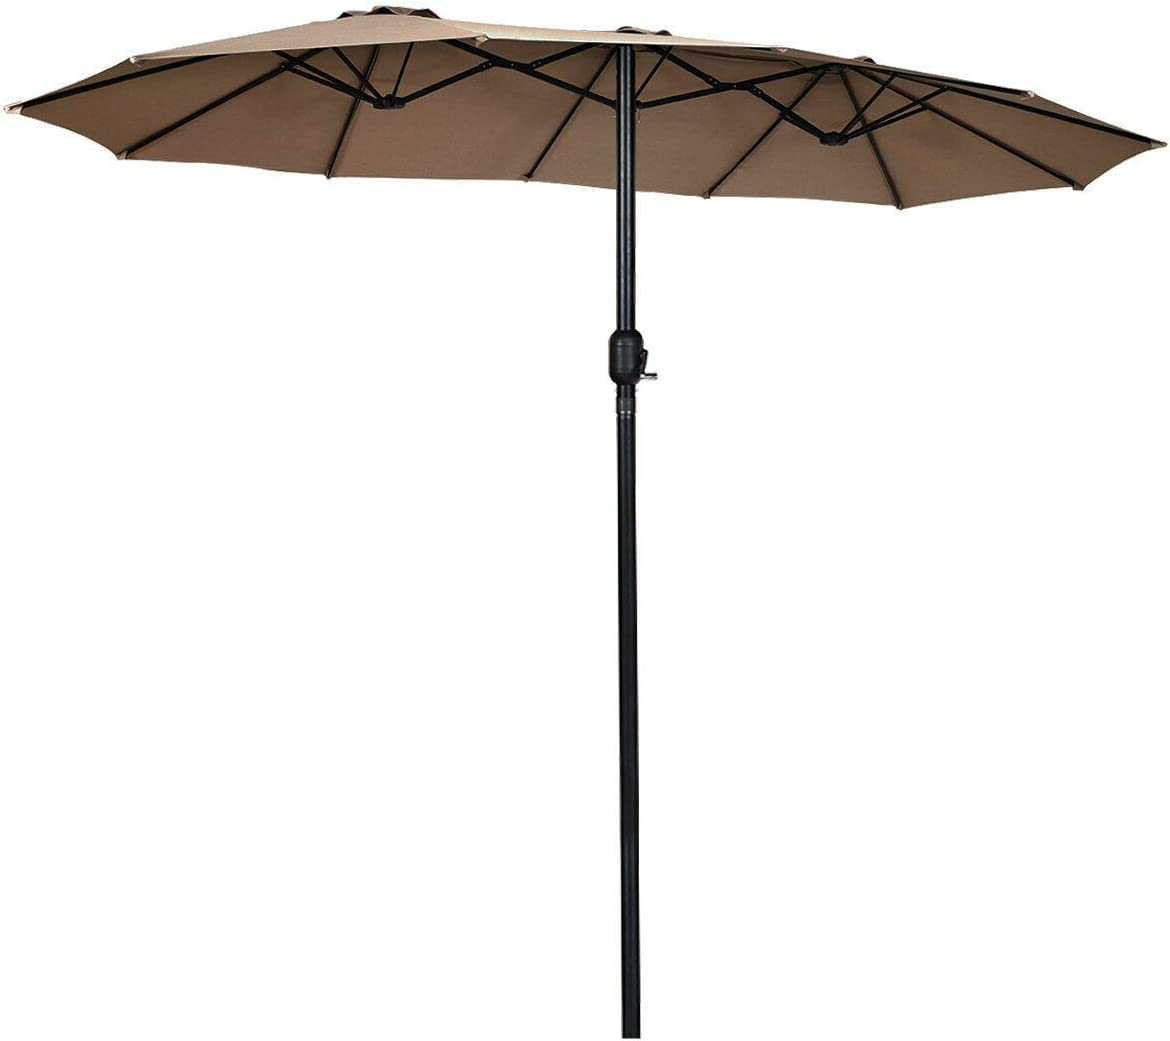 Tangkula 15 Ft Patio Umbrella Double-Sided Outdoor Market Table Umbrella with Crank Coffee